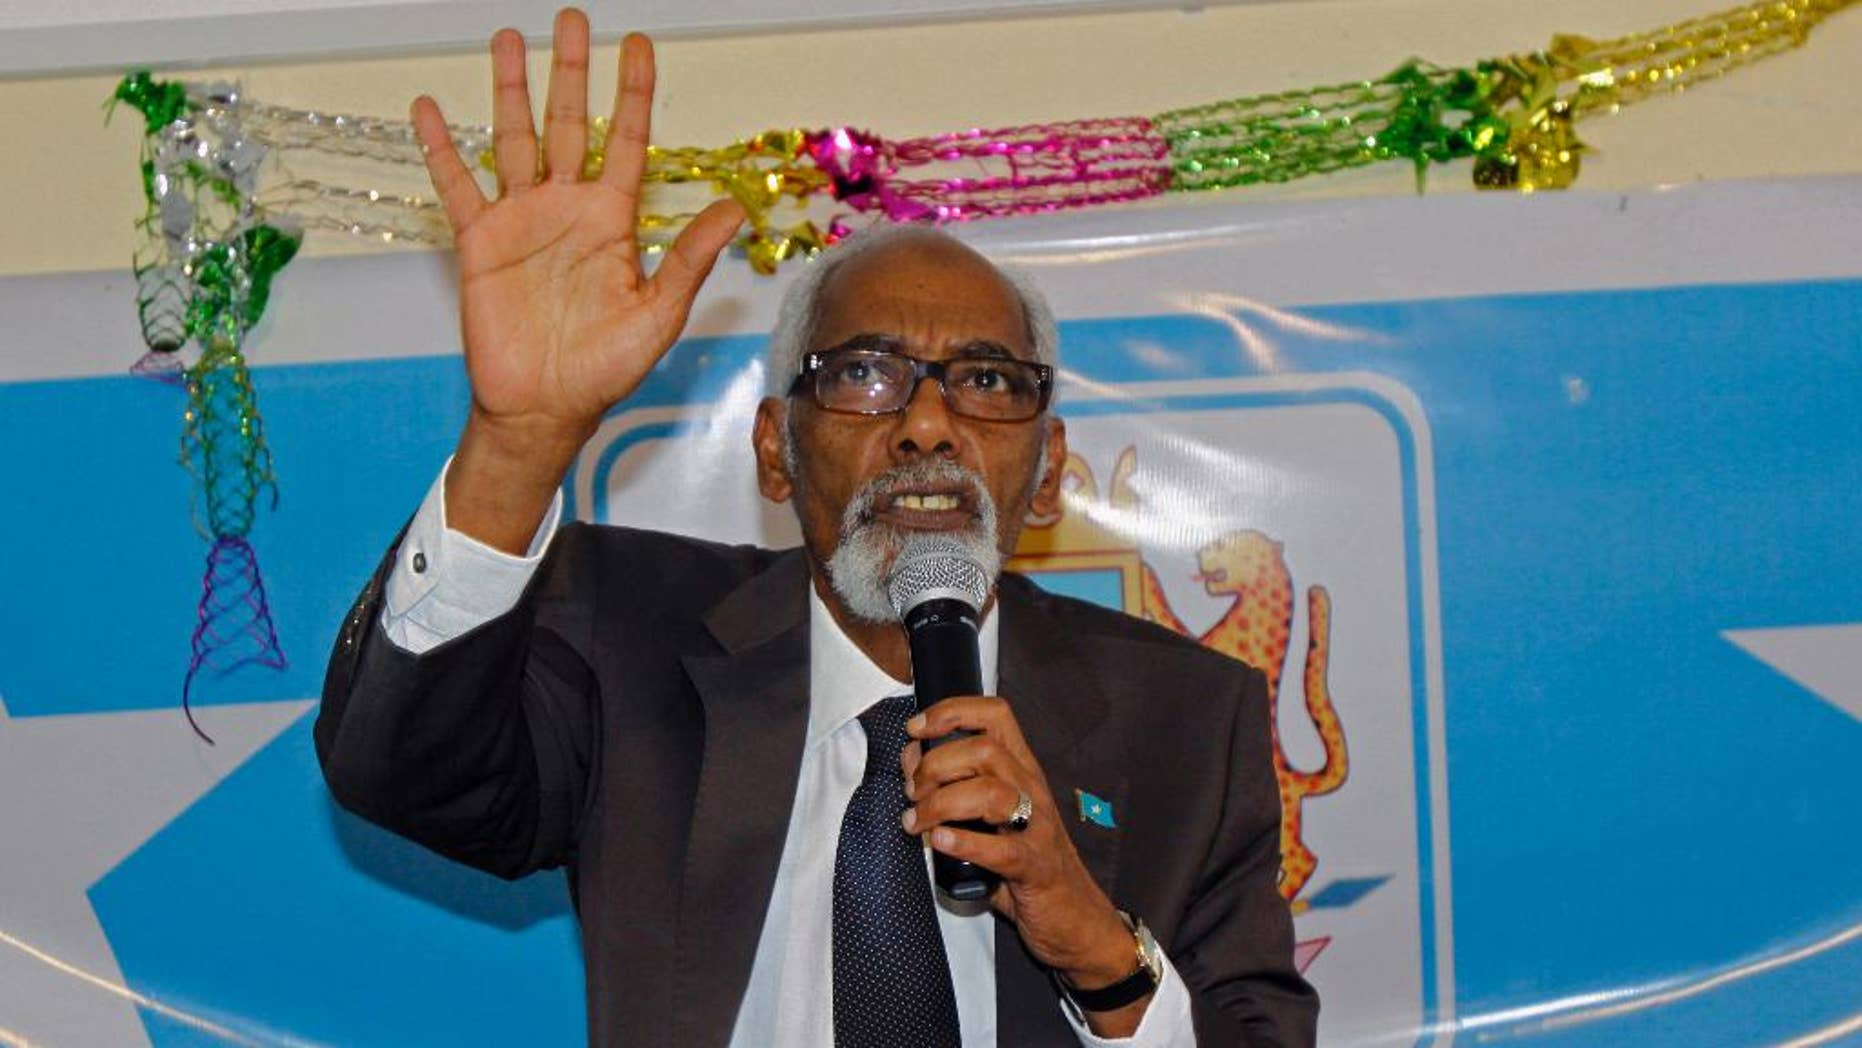 In this photo taken,Tuesday, Nov. 11, 2014,  Somalia's Speaker of Parliament Mohamed Sheikh Osman gestures, during a meeting at parliament hall in Mogadishu, Somalia. Somalia's parliamentary speaker says he has decided to drop an impeachment motion against the president in favor of talks to end the political crisis. (AP Photo/Farah Abdi Warsameh)